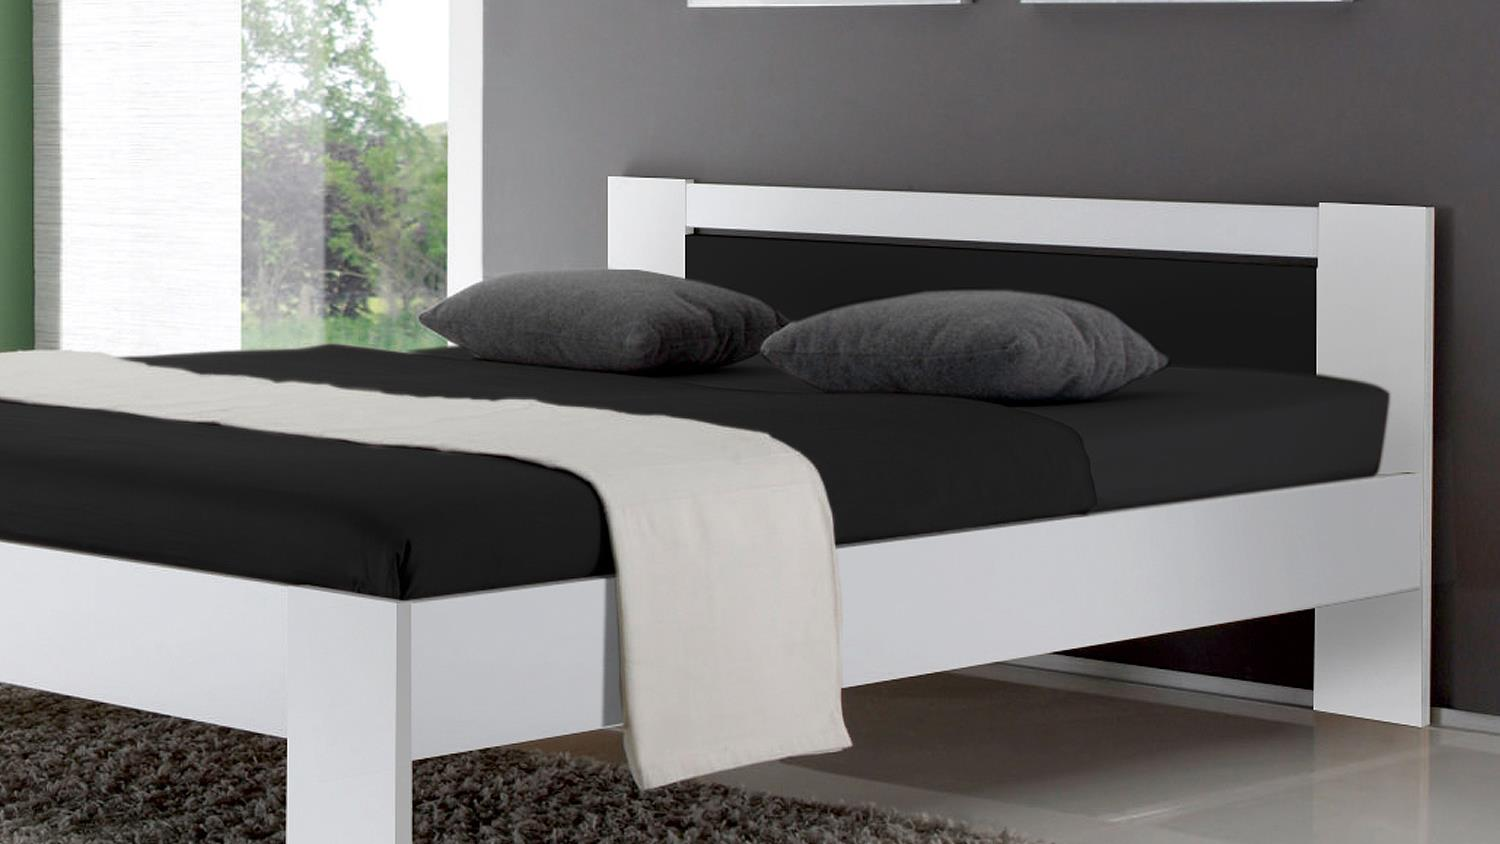 bett vega futonbett wei schwarz mit rollrost und matratze 140x200 cm. Black Bedroom Furniture Sets. Home Design Ideas